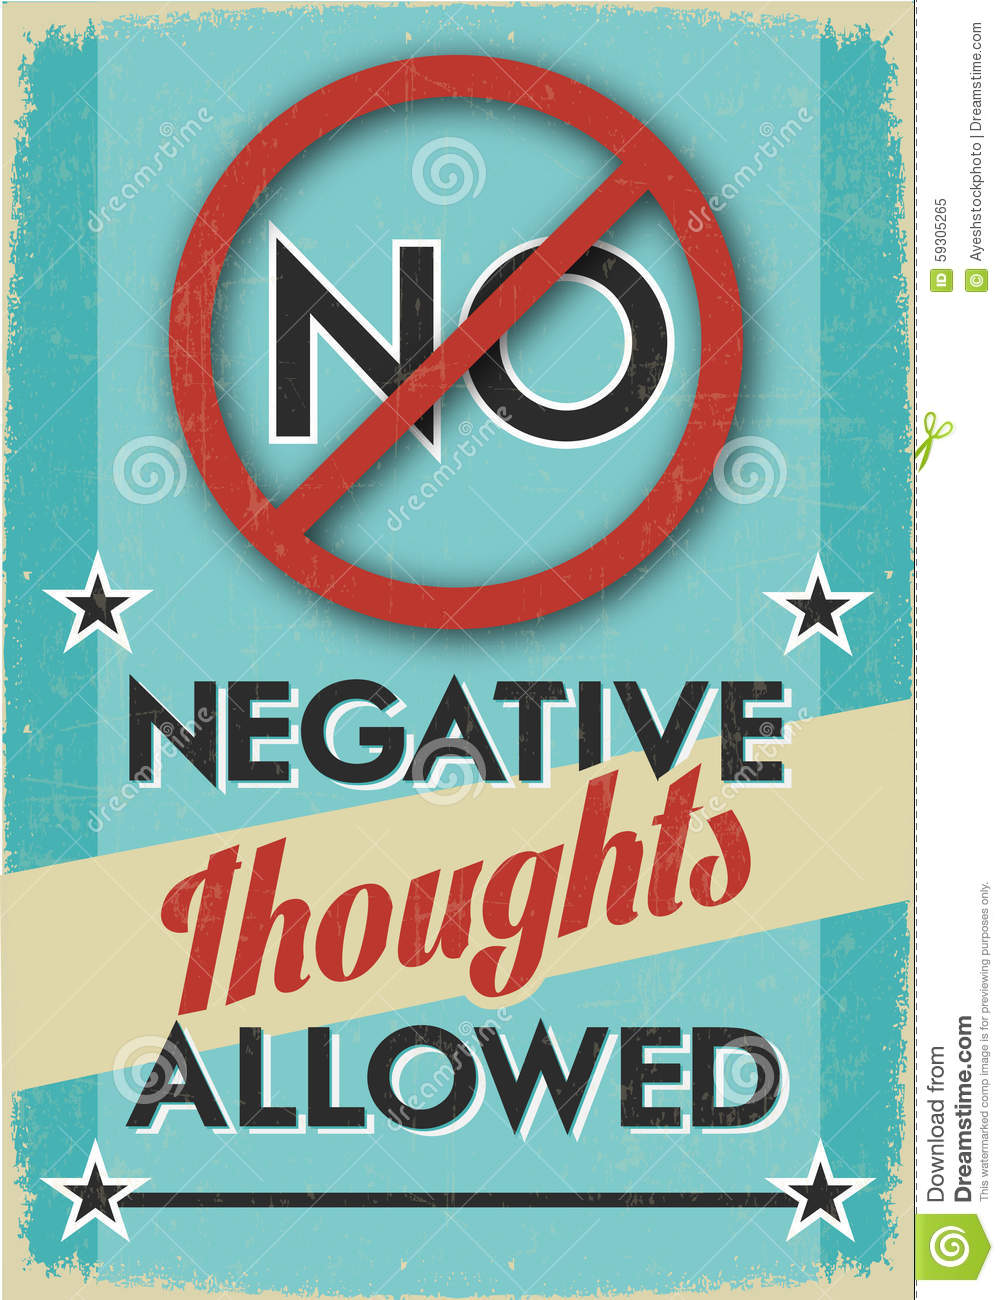 no negative thoughts allowed stock illustration image